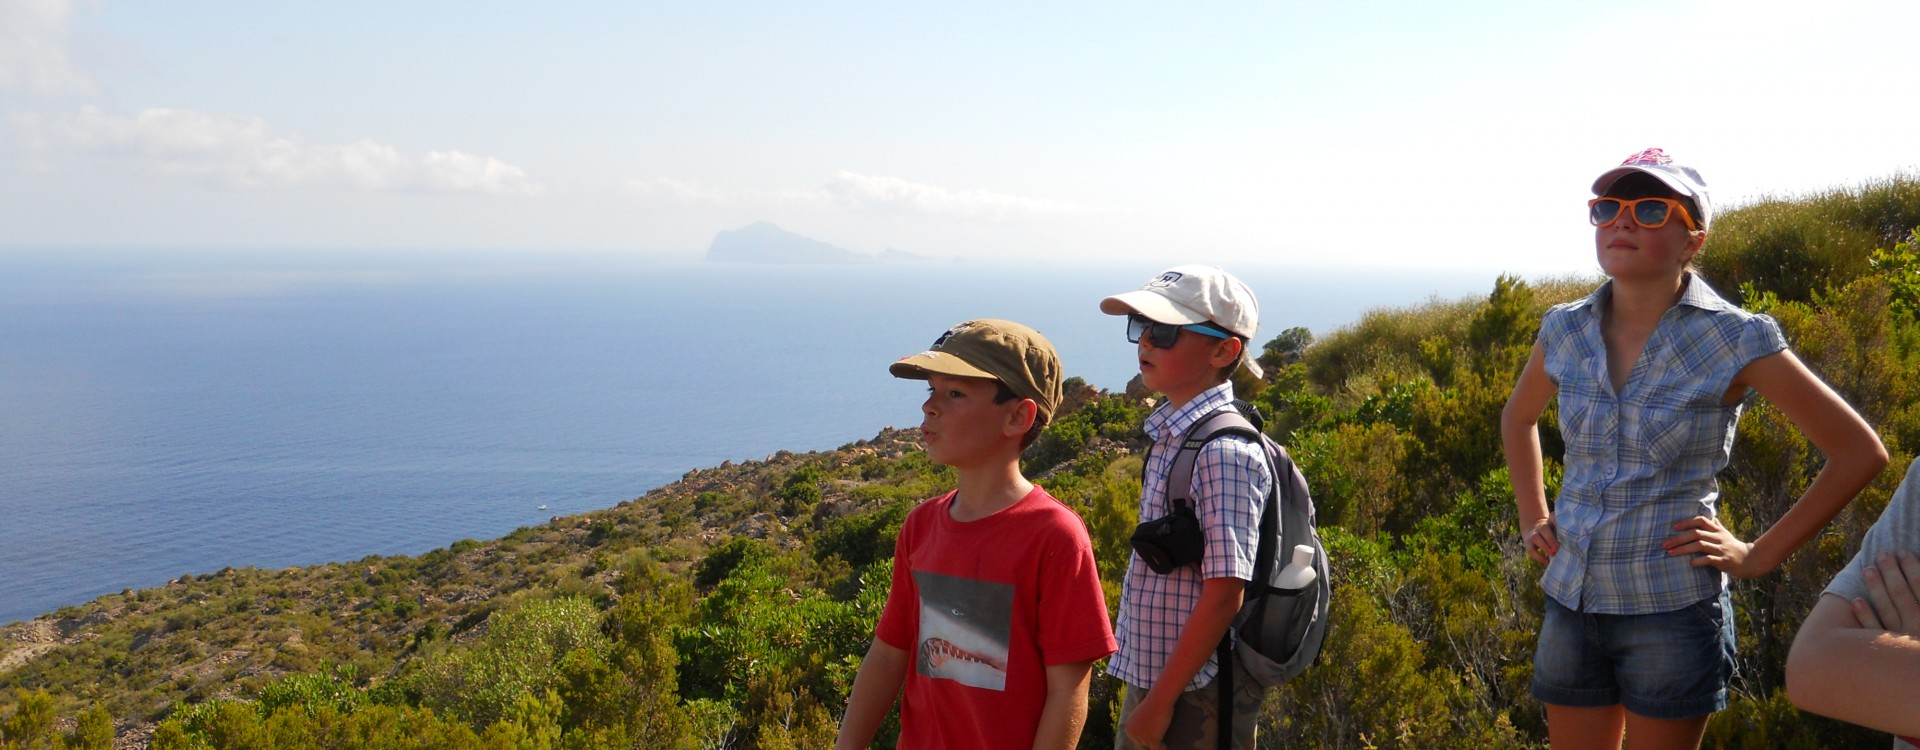 Walking on Sicily with the children